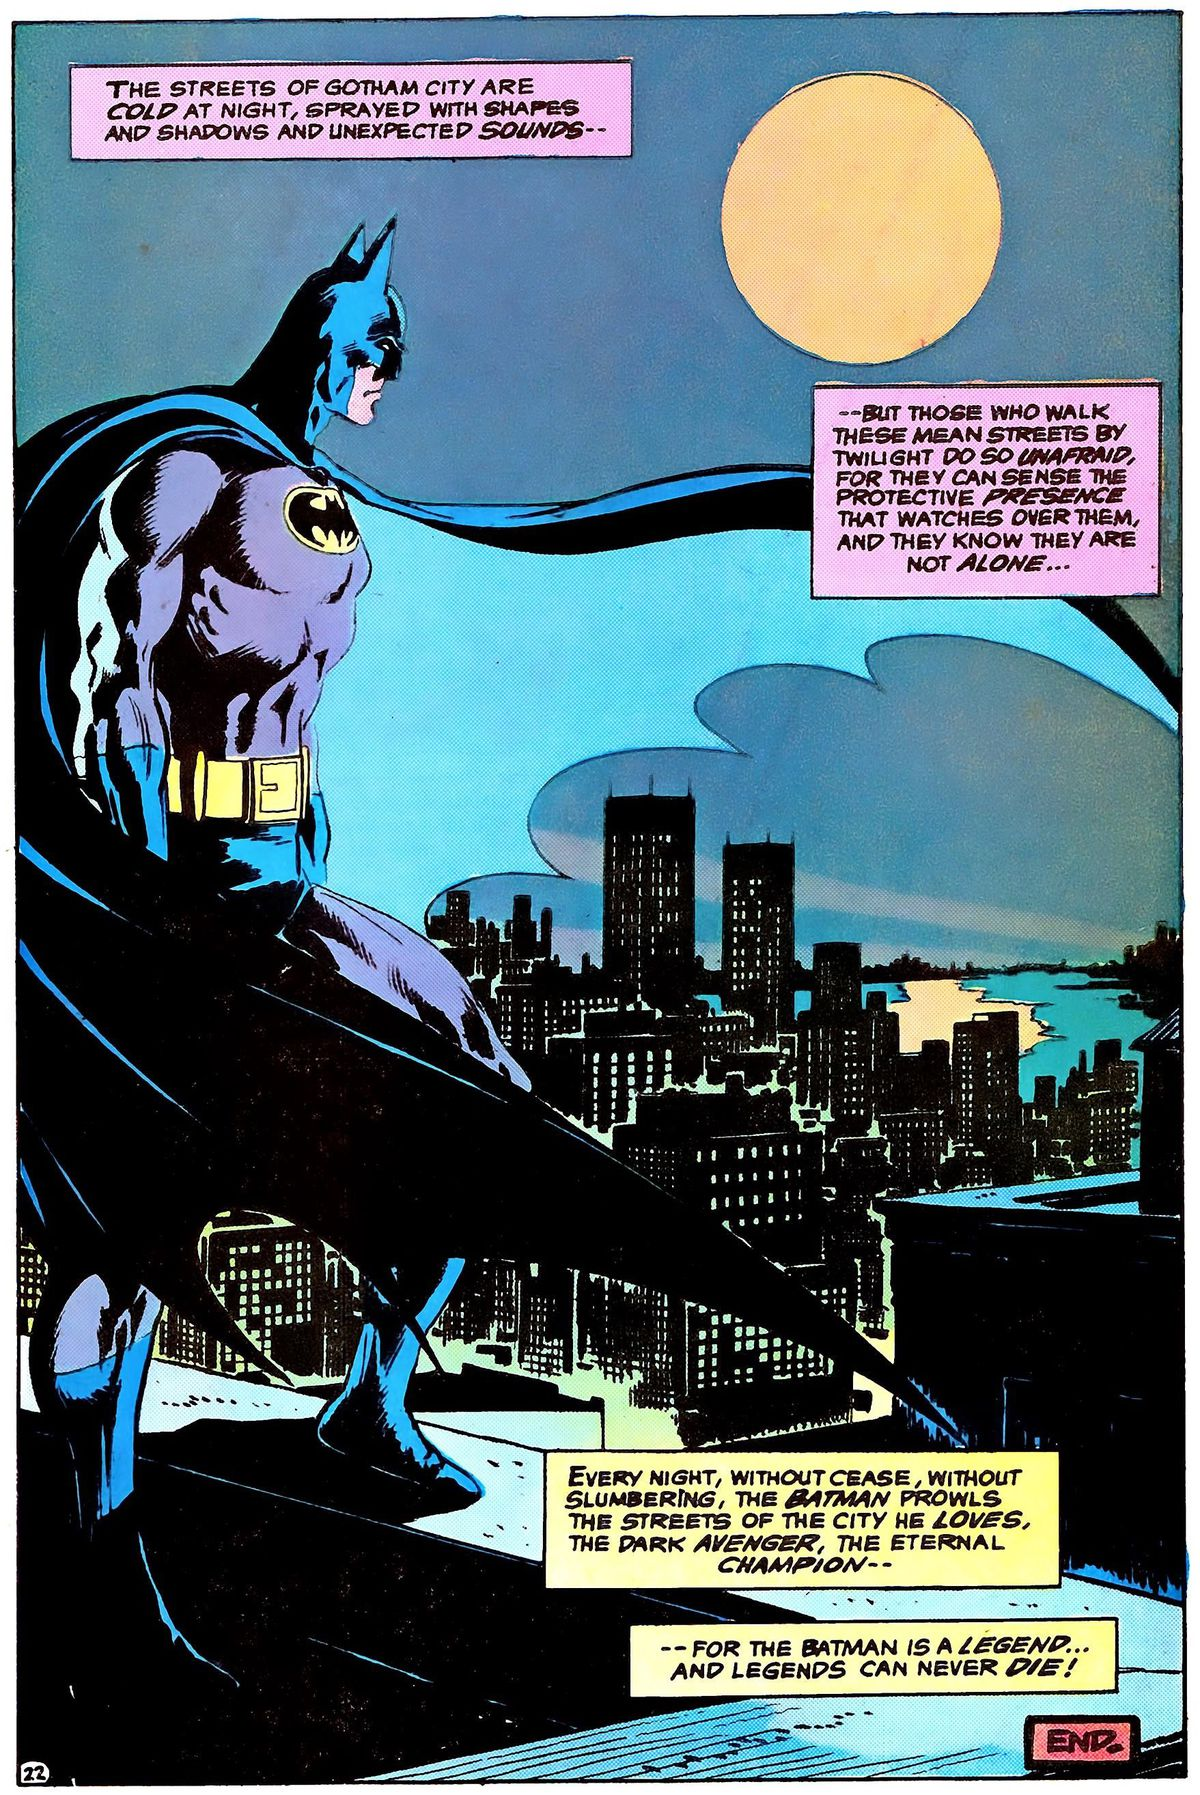 Batman stands on a rooftop overlooking city streets in the light of a full moon. His costume is blue on grey, with a black bat on a yellow oval, in